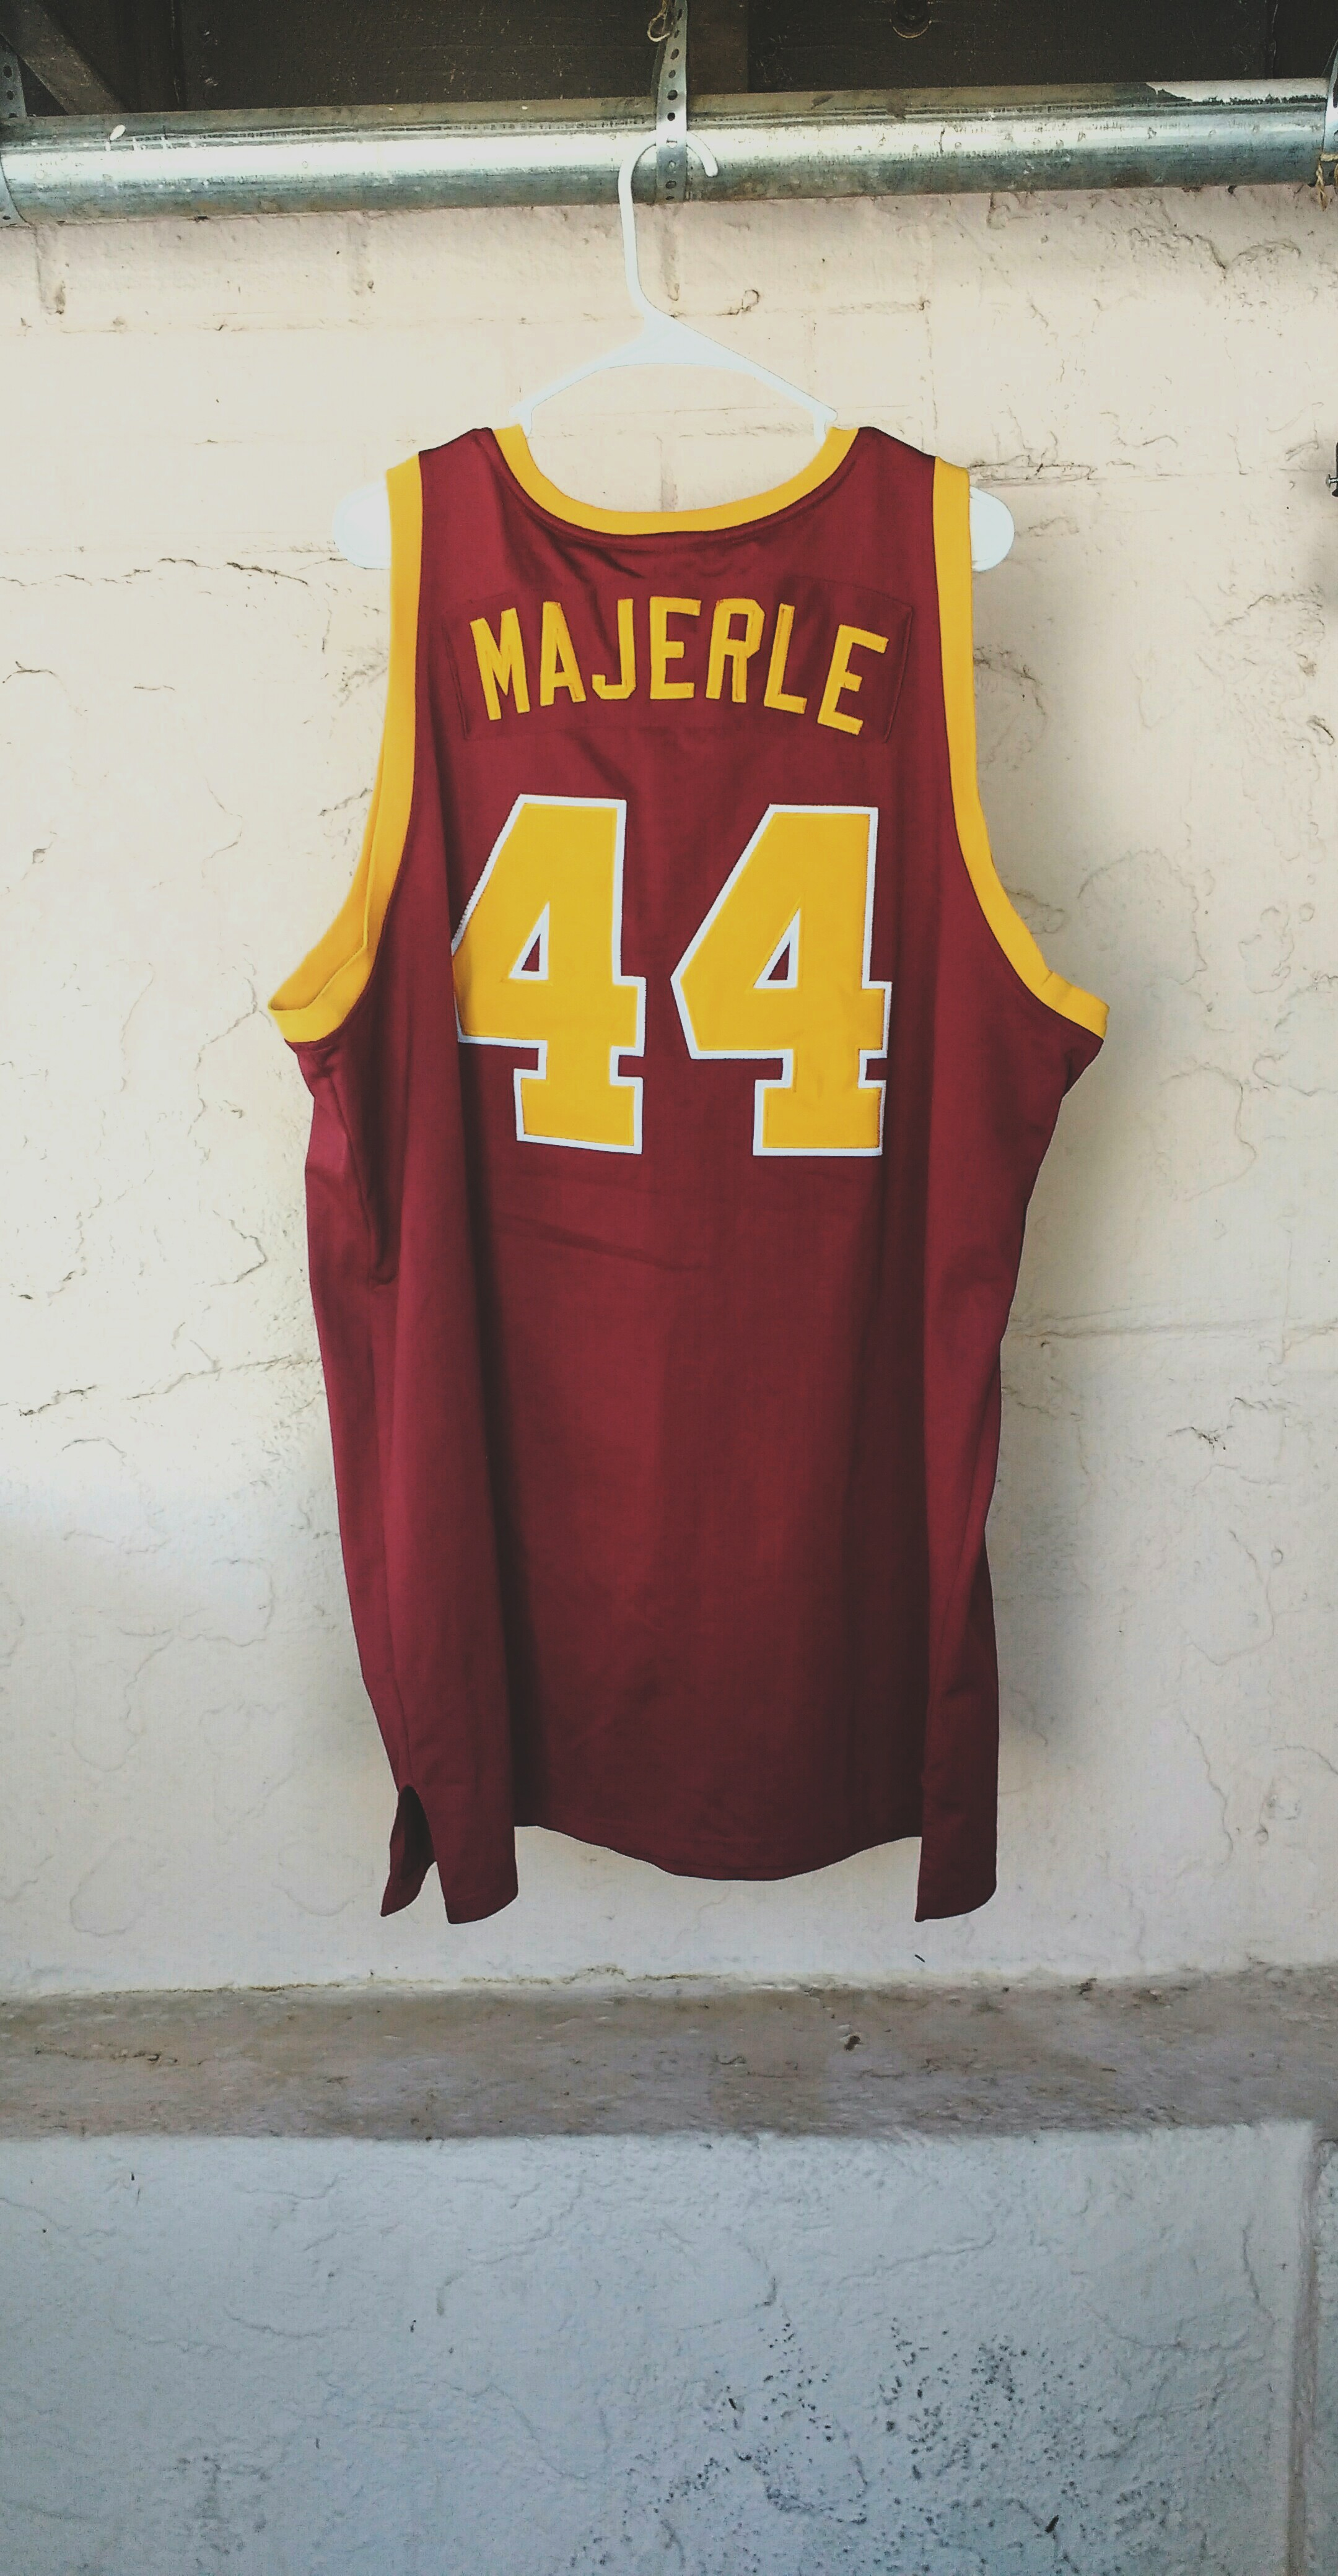 db91ab688 Vintage Adidas Dan Majerle Authentic Central Michigan Jersey Size 54 ...